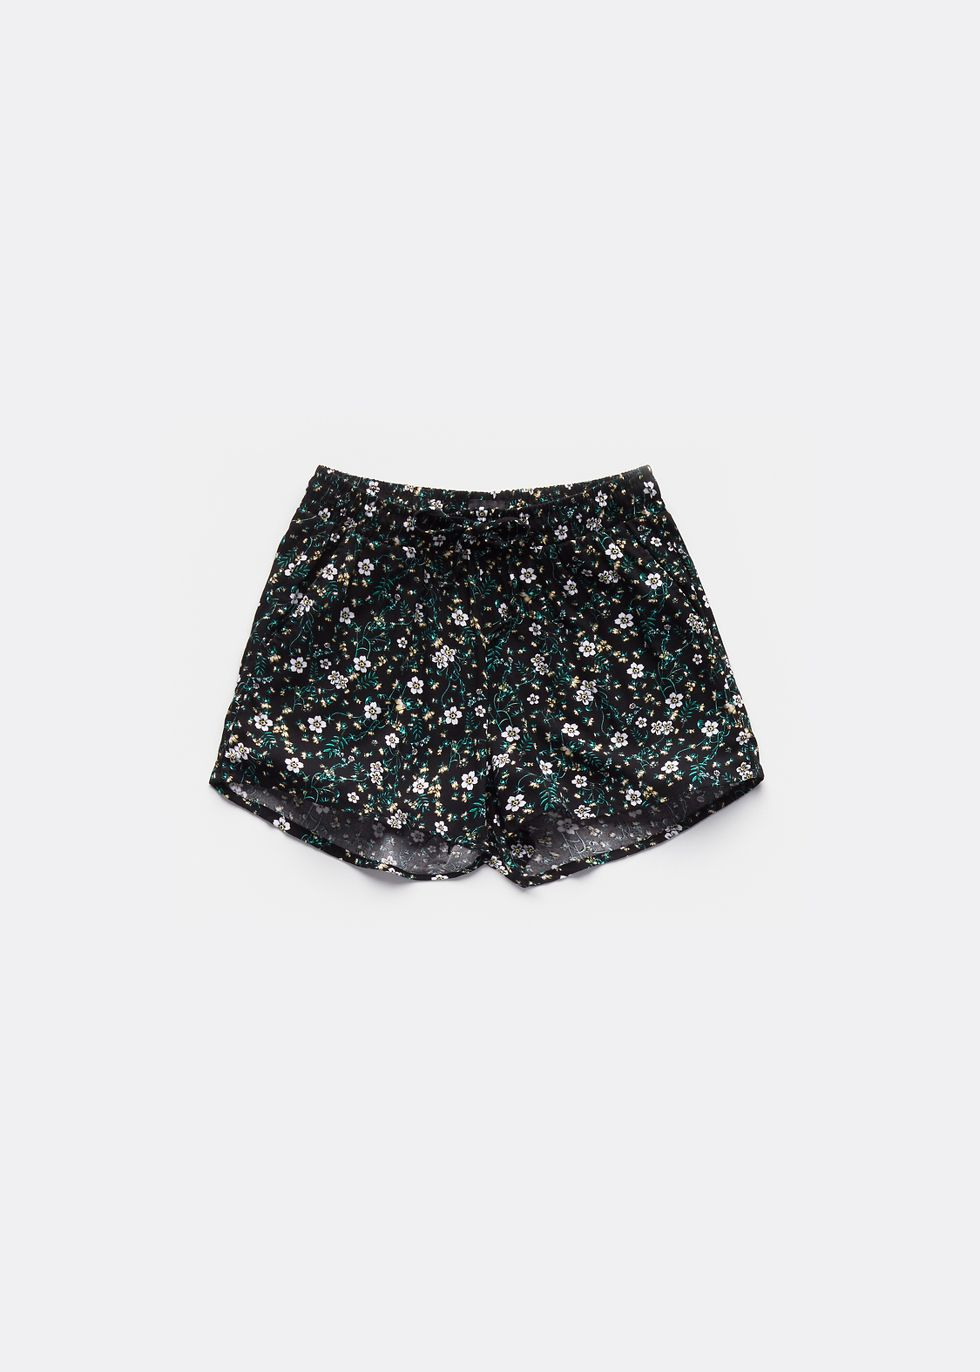 Flowy printed shorts   The Sting